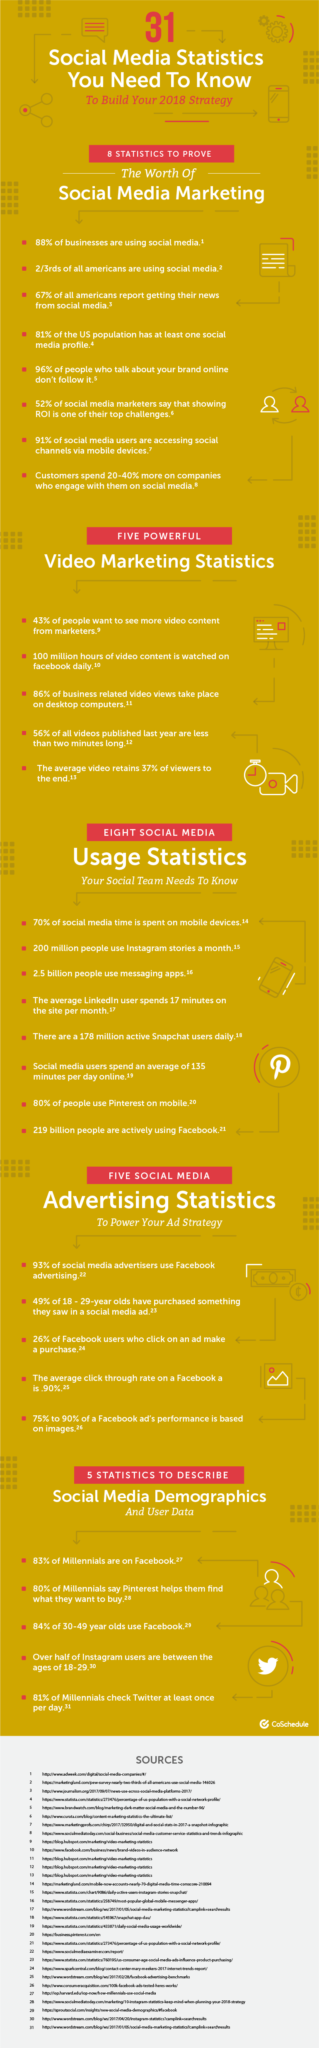 Social Media Marketing Statistics, Facts And Figures